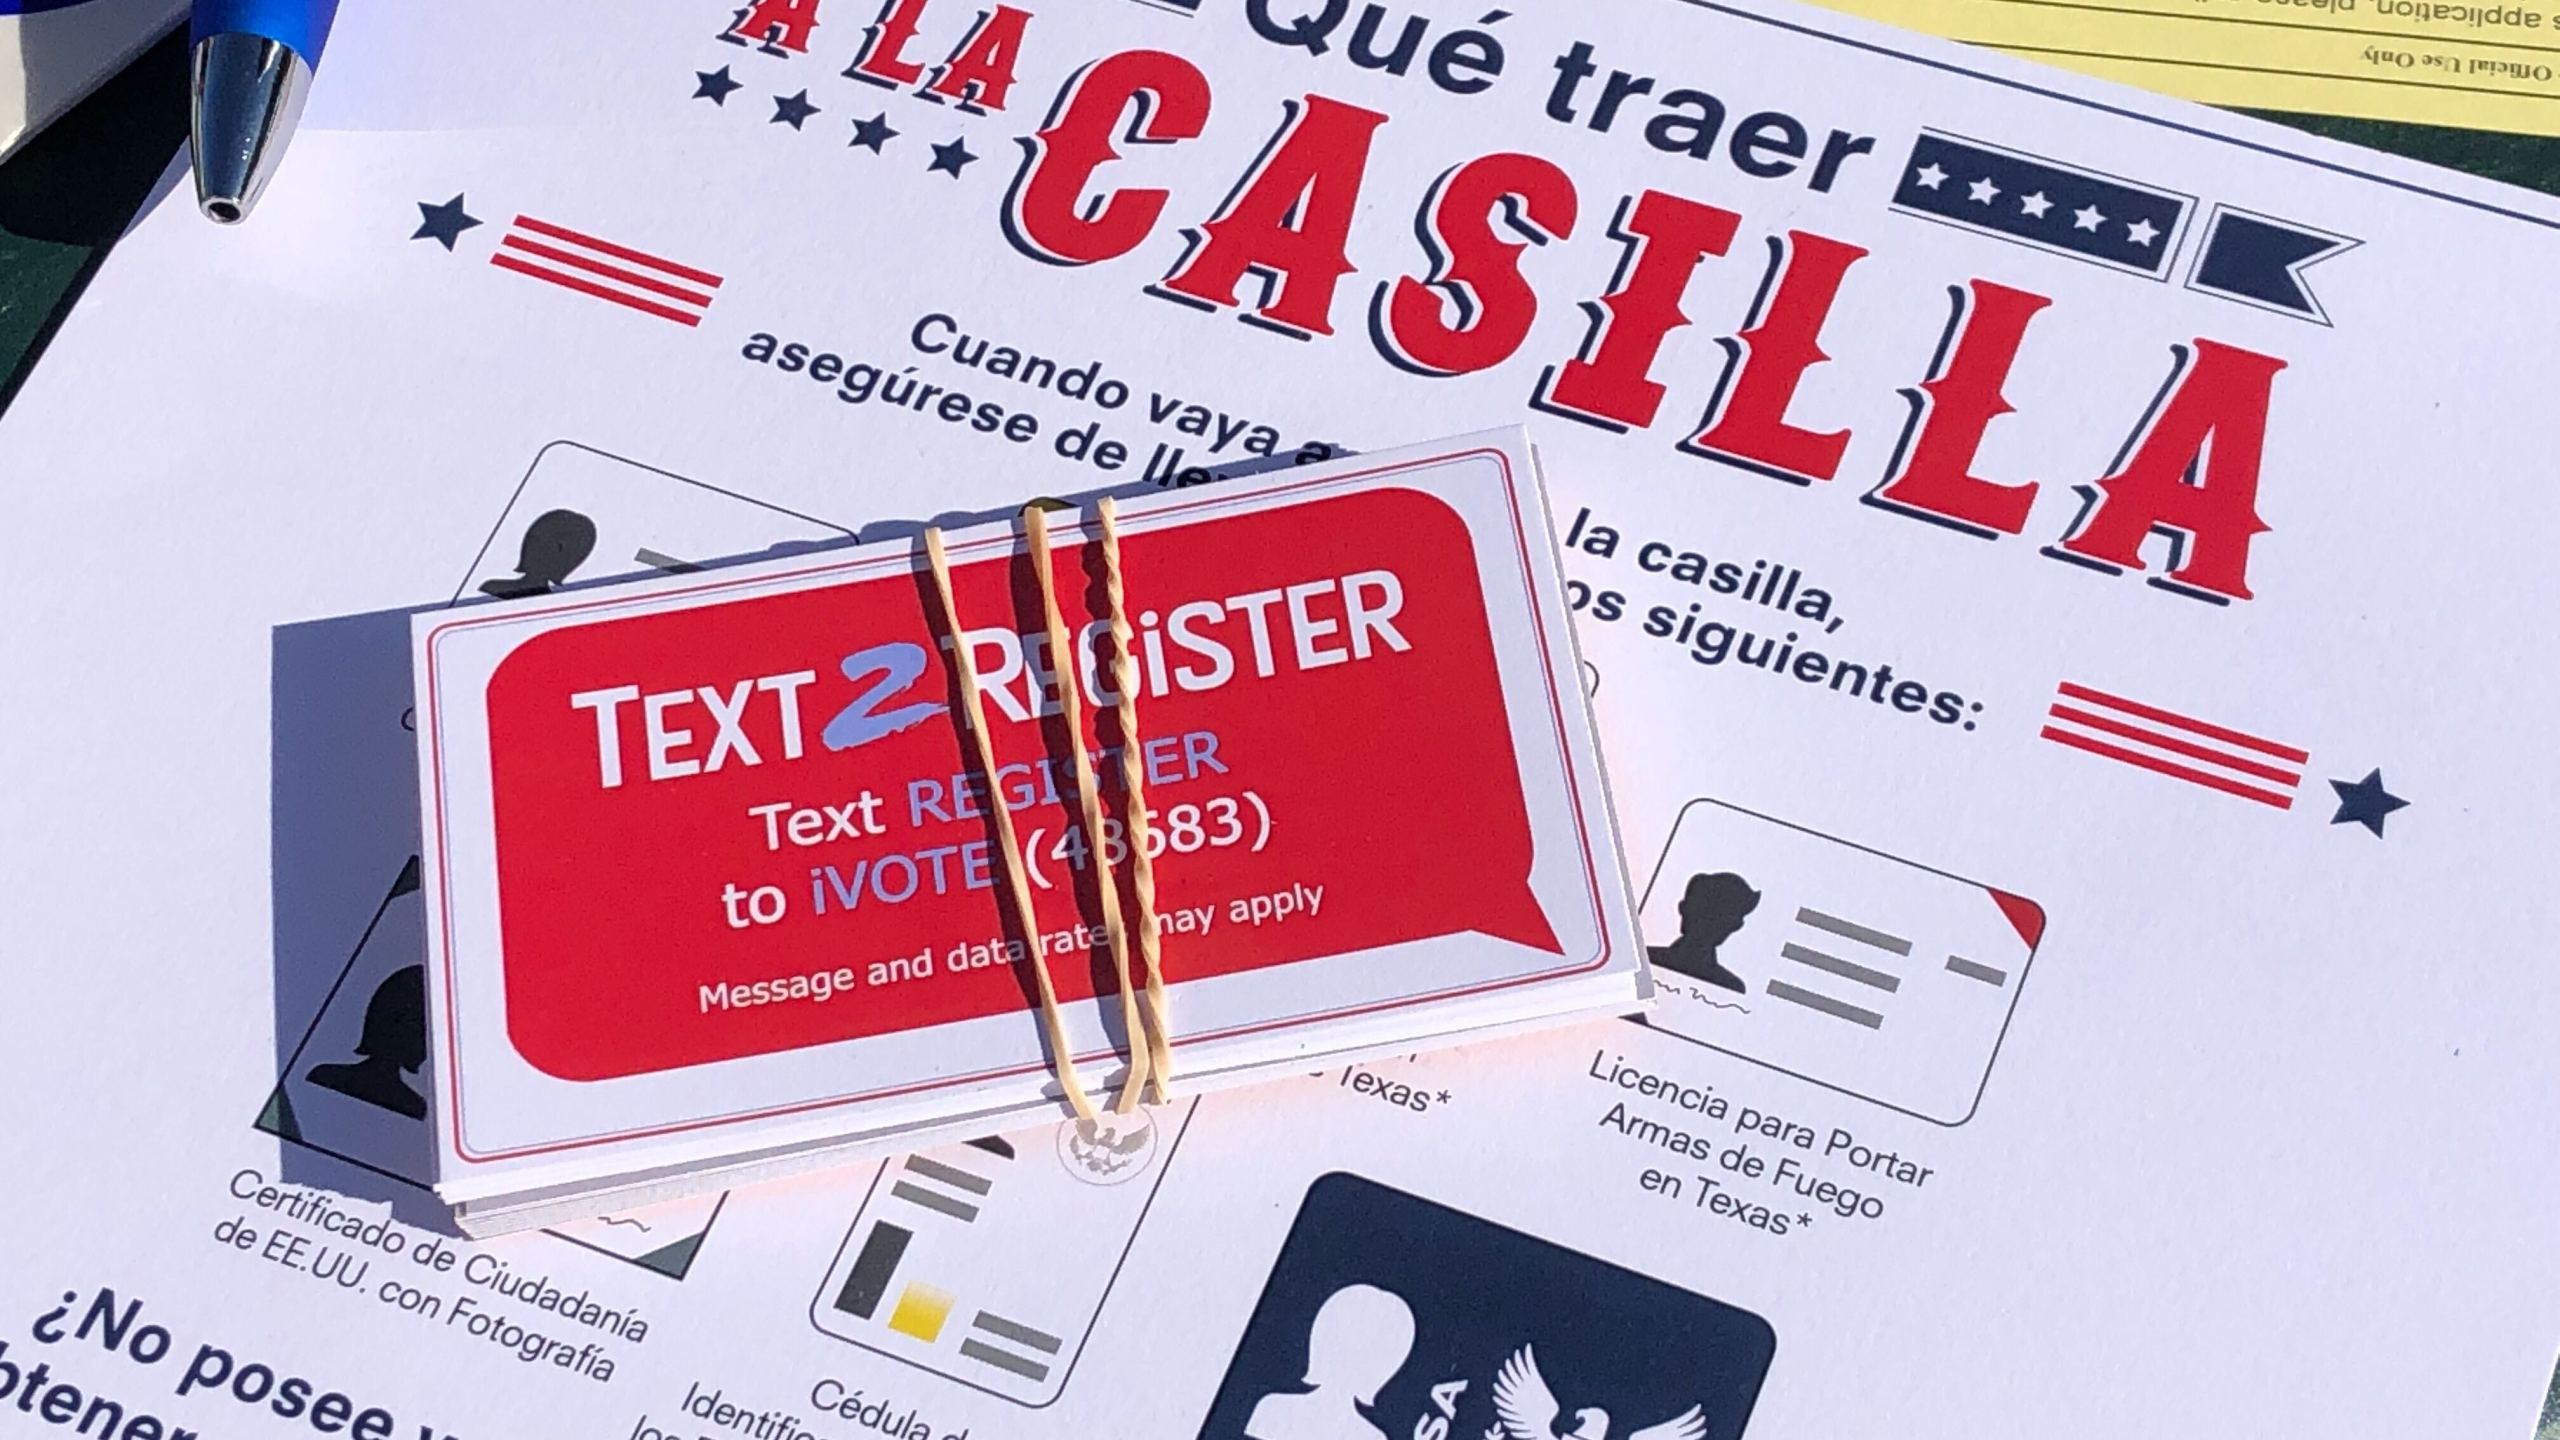 Drive-thru voter registration event in south Austin Sept. 29 (KXAN Photo/Frank Martinez)